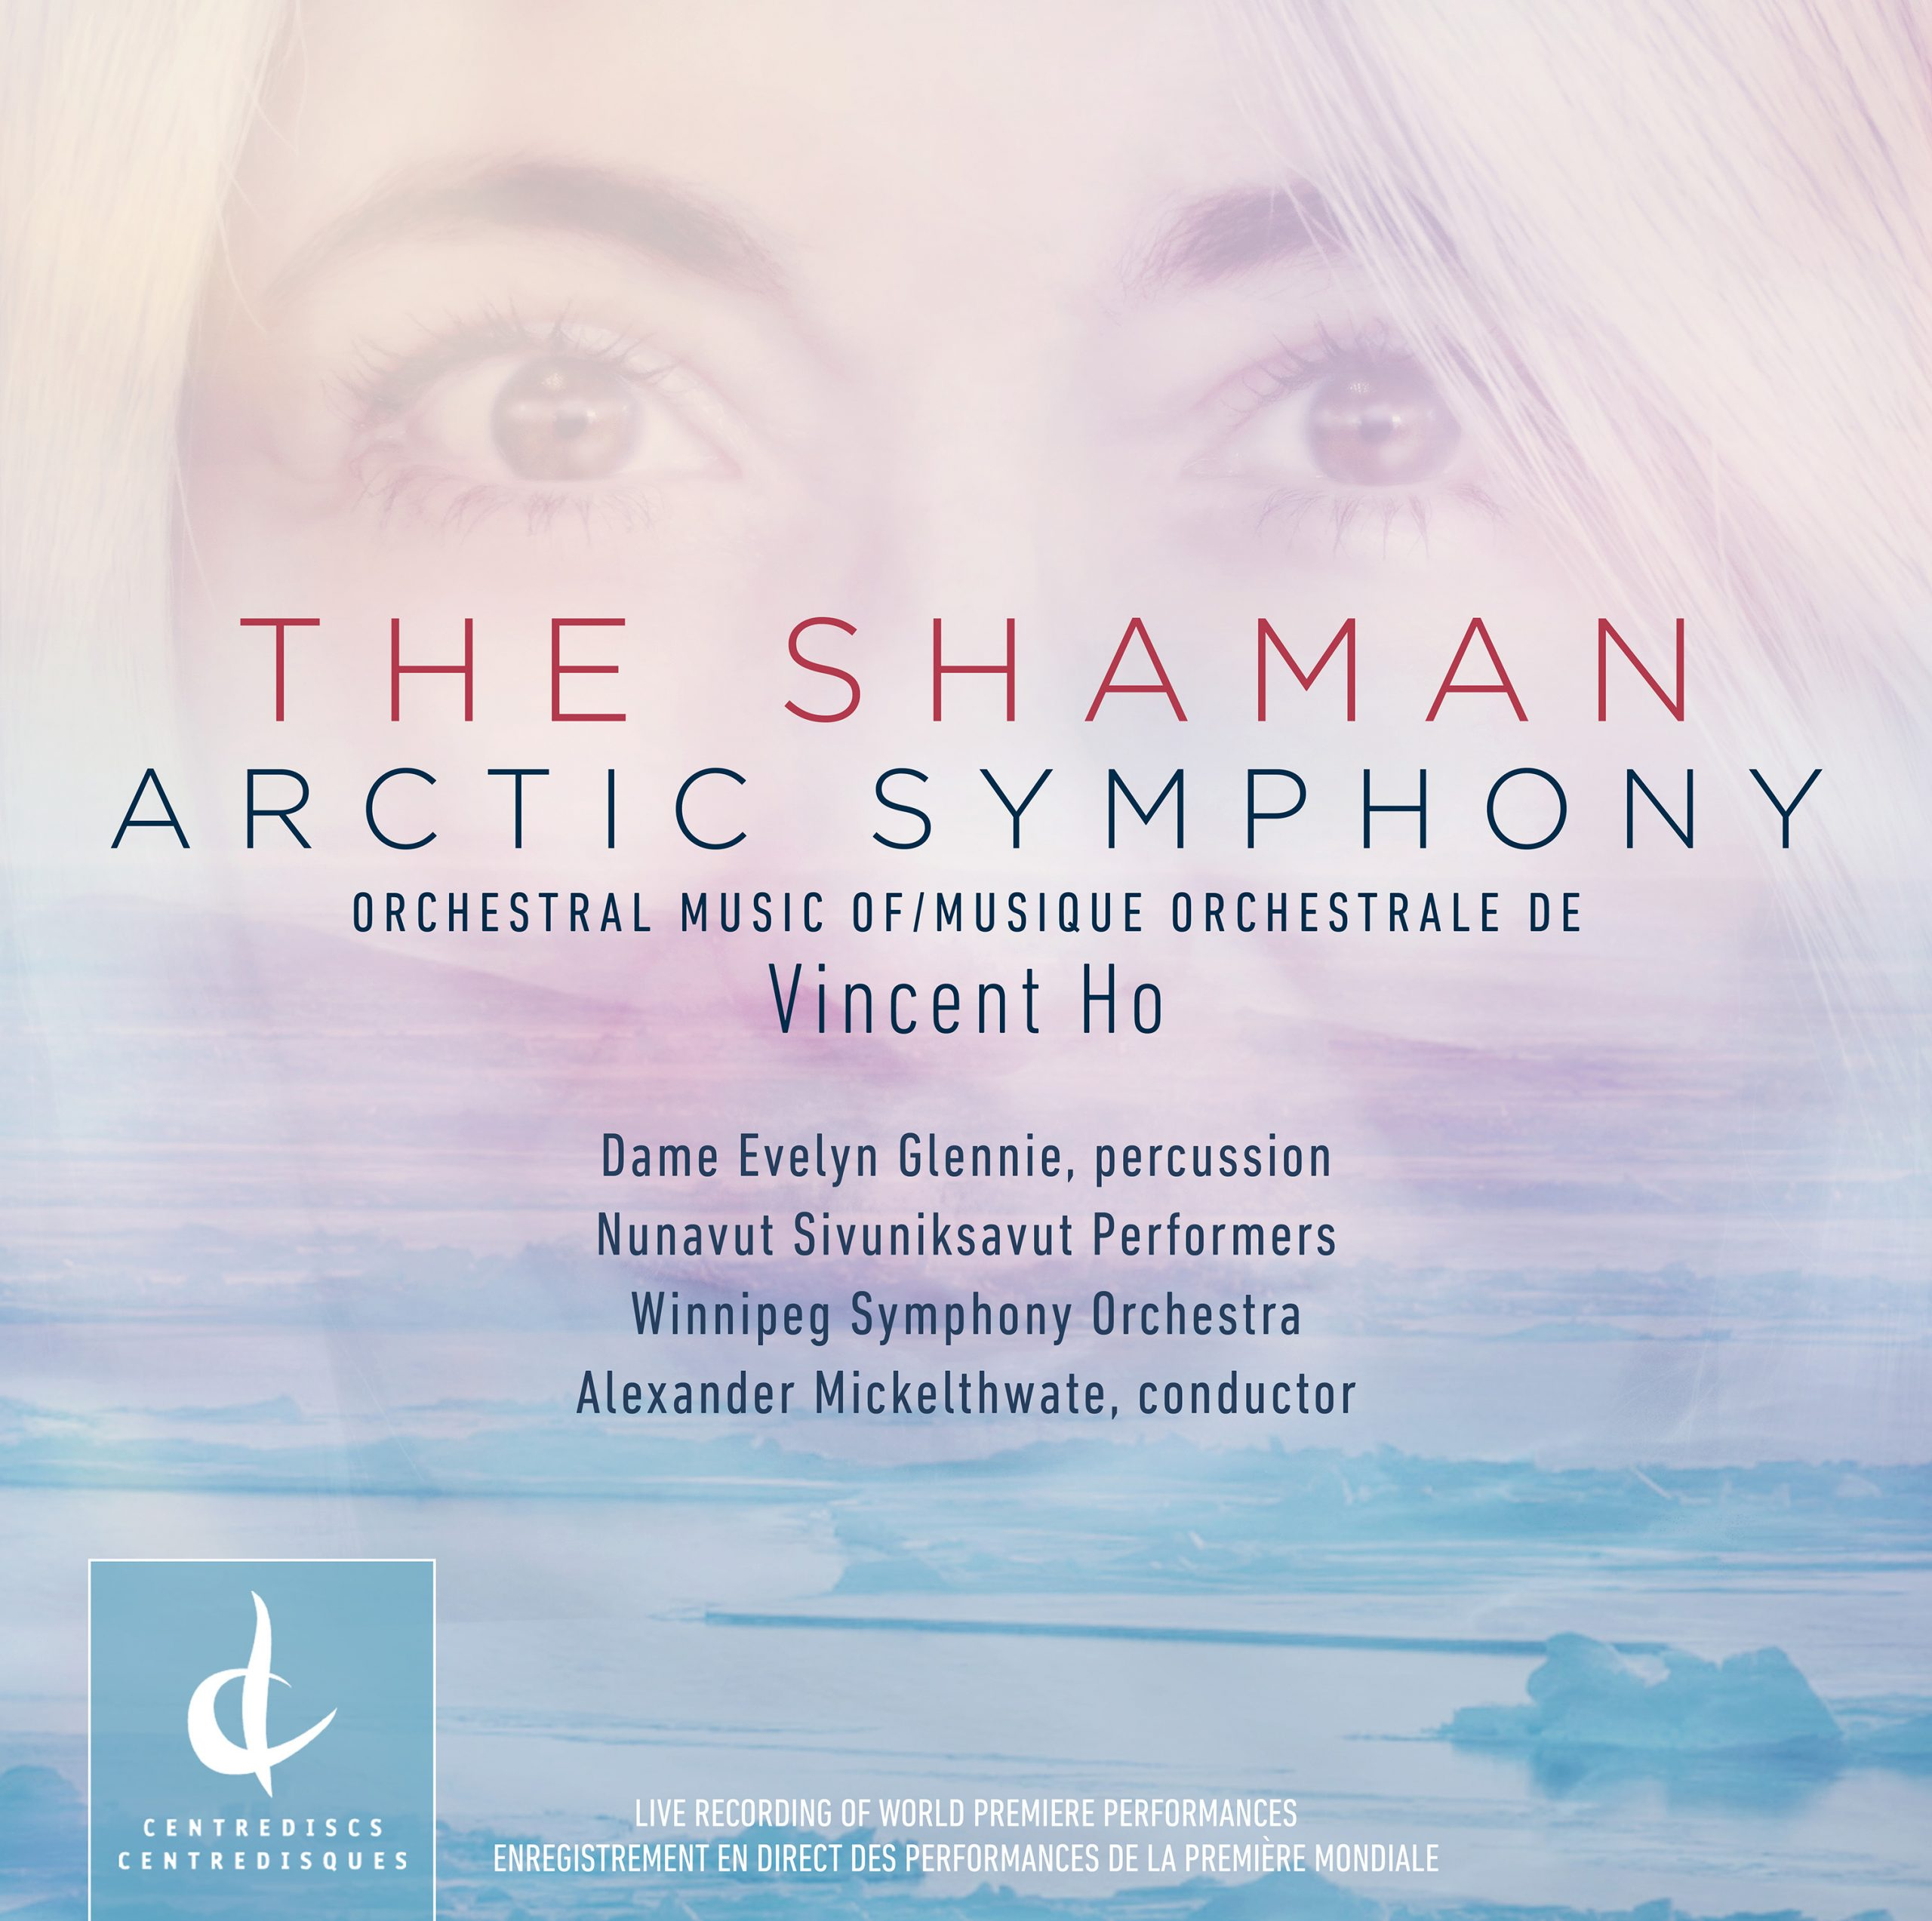 THE SHAMAN | ARCTIC SYMPHONY: Orchestral Music by Vincent Ho